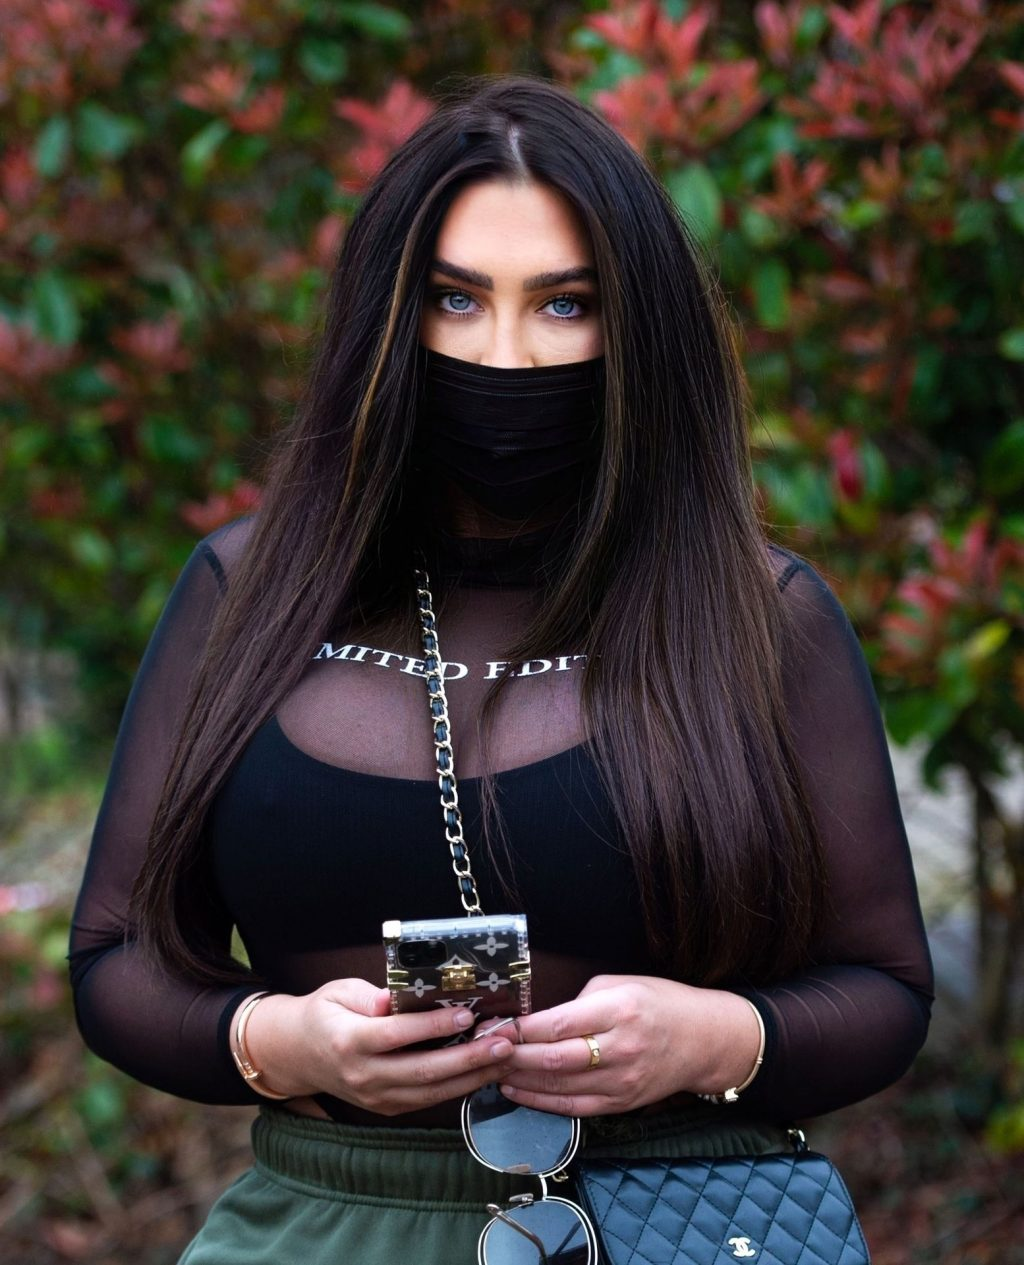 Lauren Goodger Wears a Facial Mask to Protect Against Coronavirus (15 Photos)